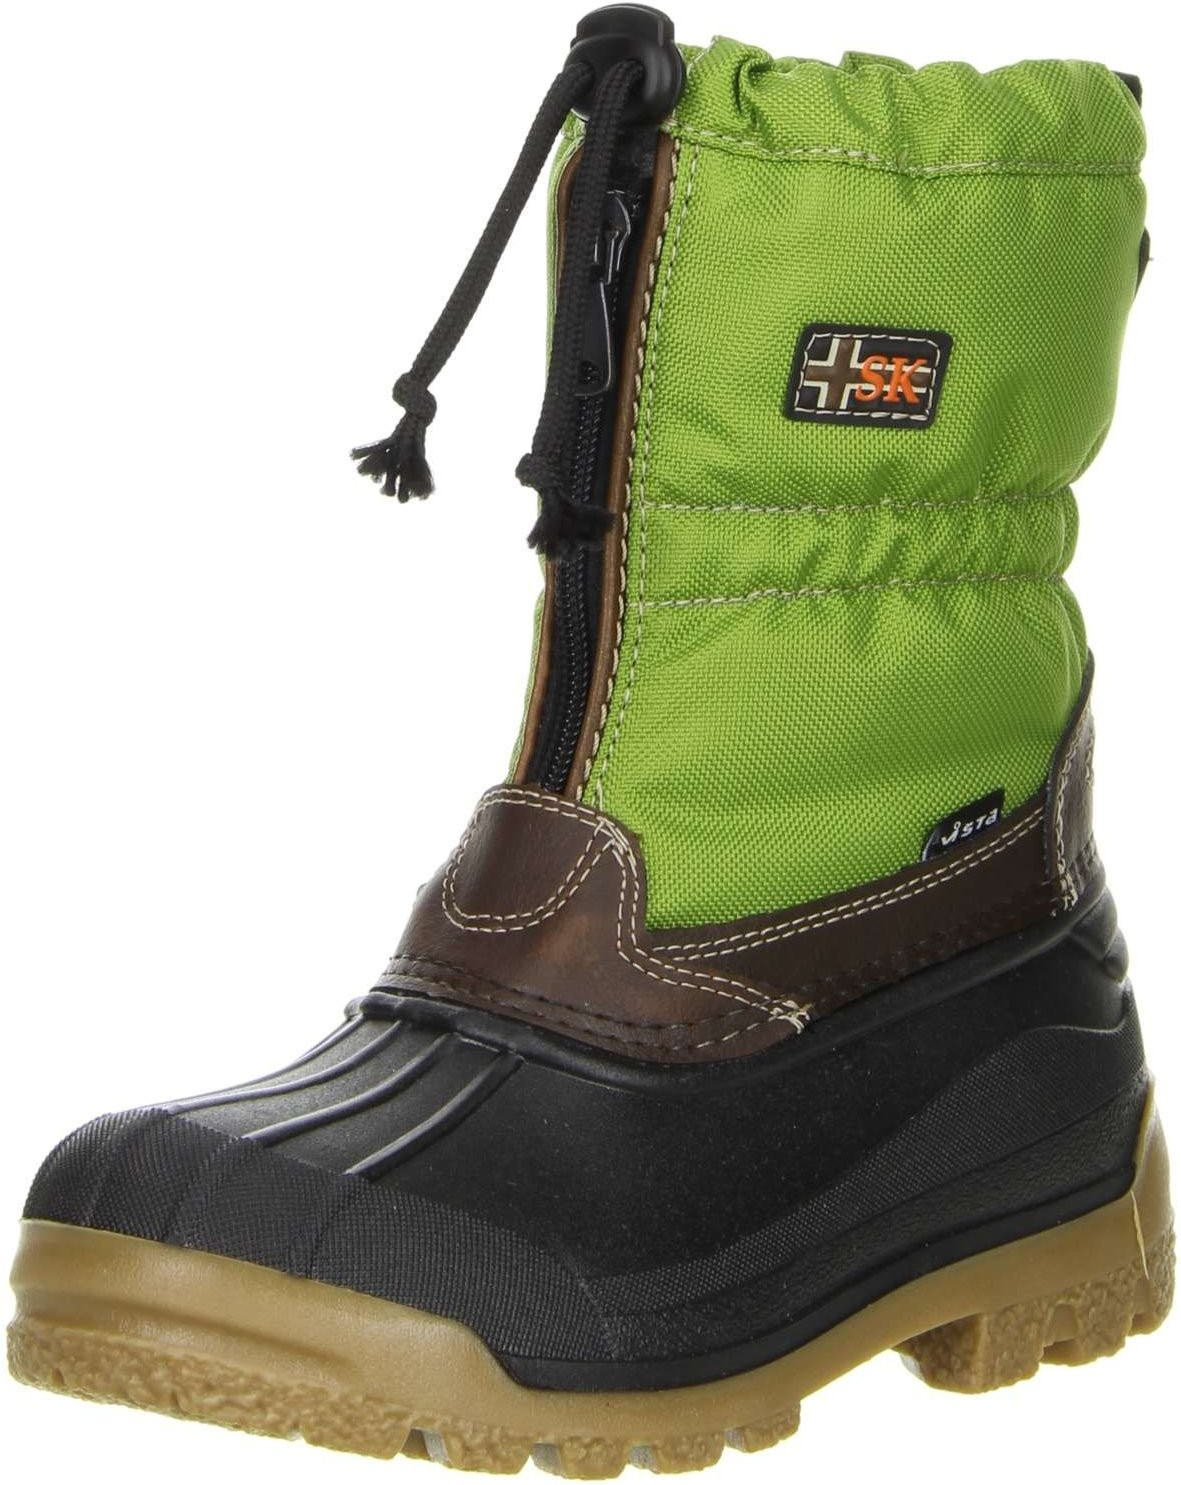 vista canada polar kinder winterstiefel snowboots thermo tex innenschuhen gr n kinderschuhe. Black Bedroom Furniture Sets. Home Design Ideas